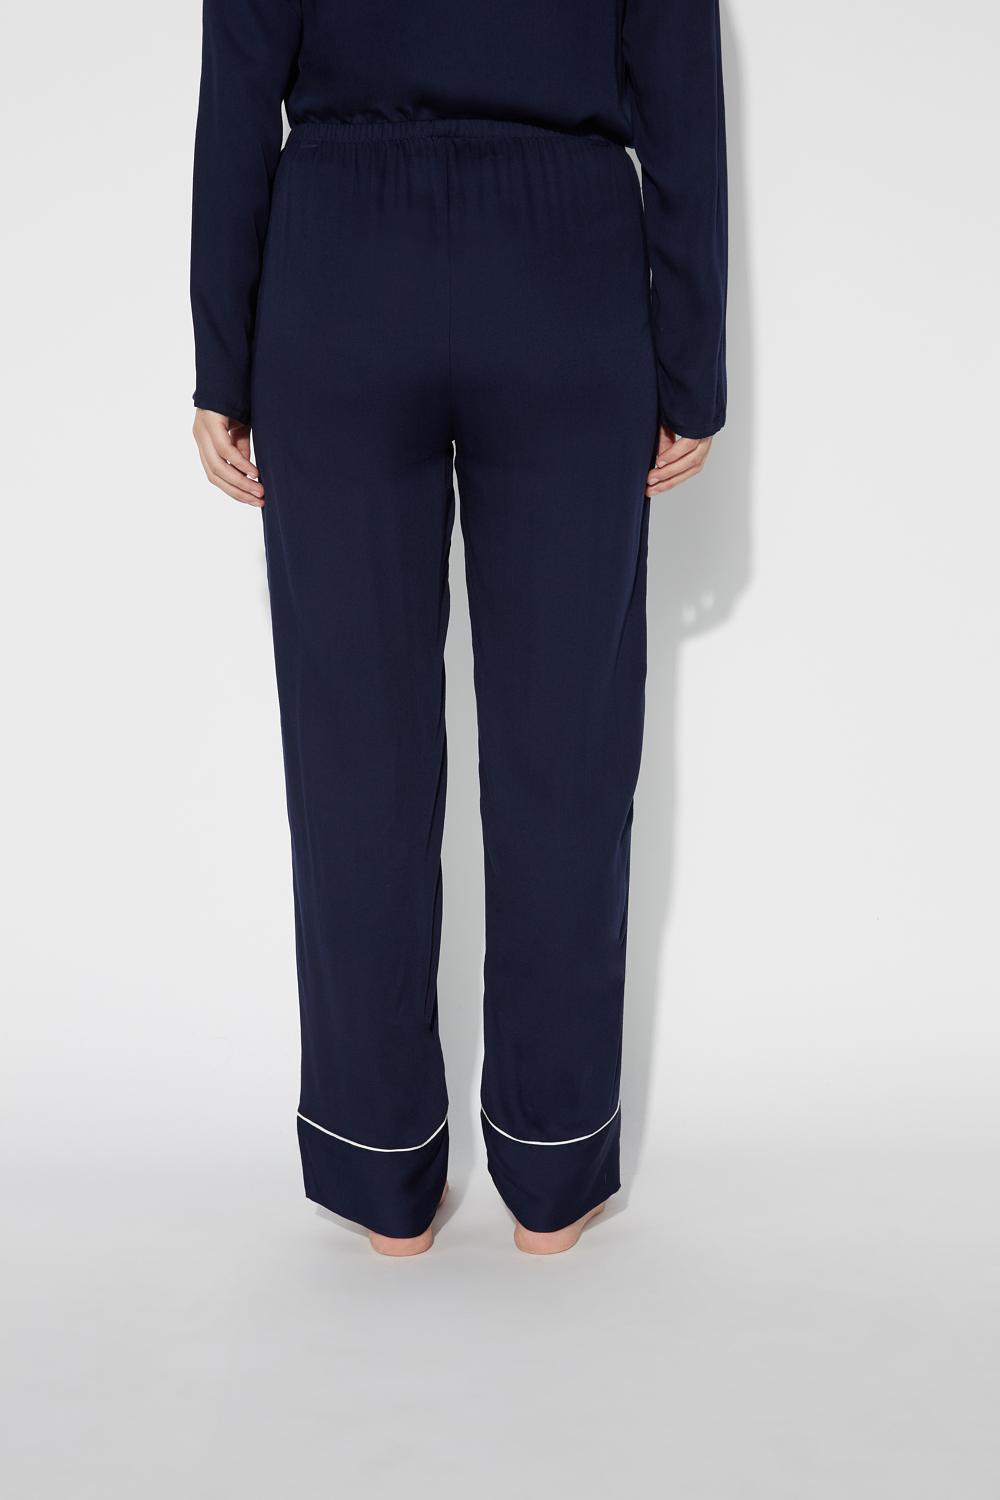 Long Soft Viscose Trousers With Piping Details